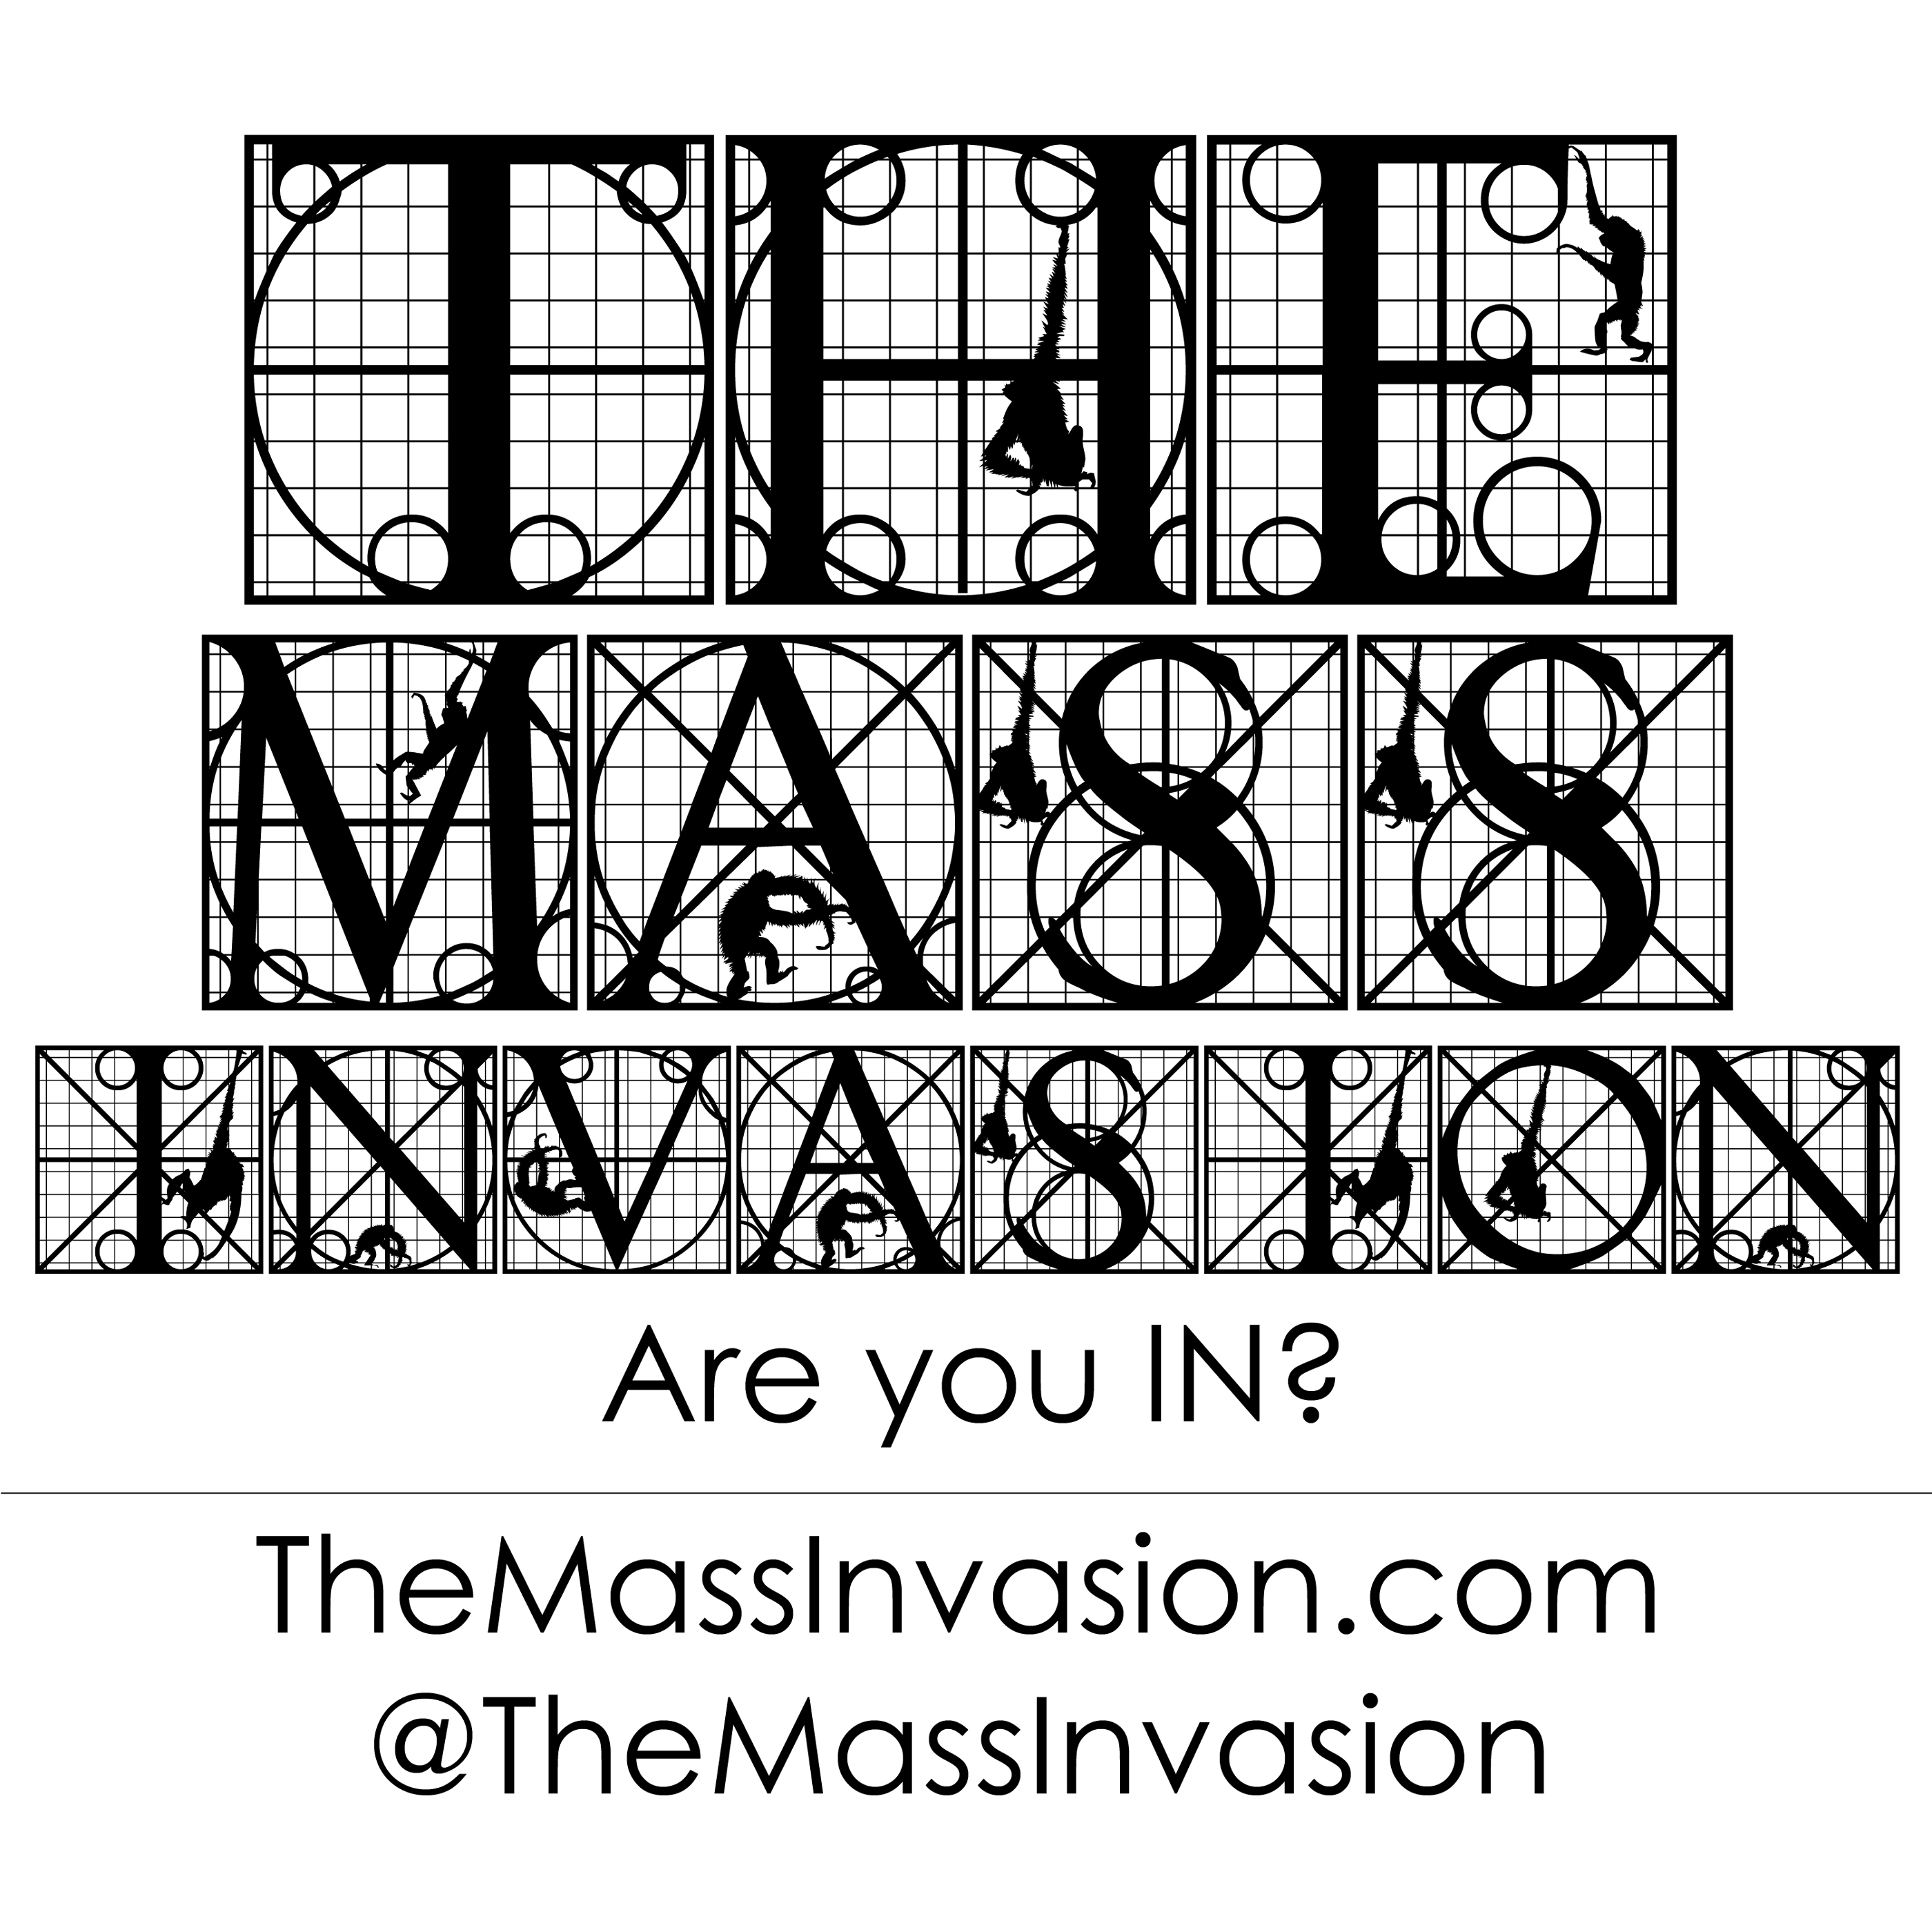 The Mass Invasion